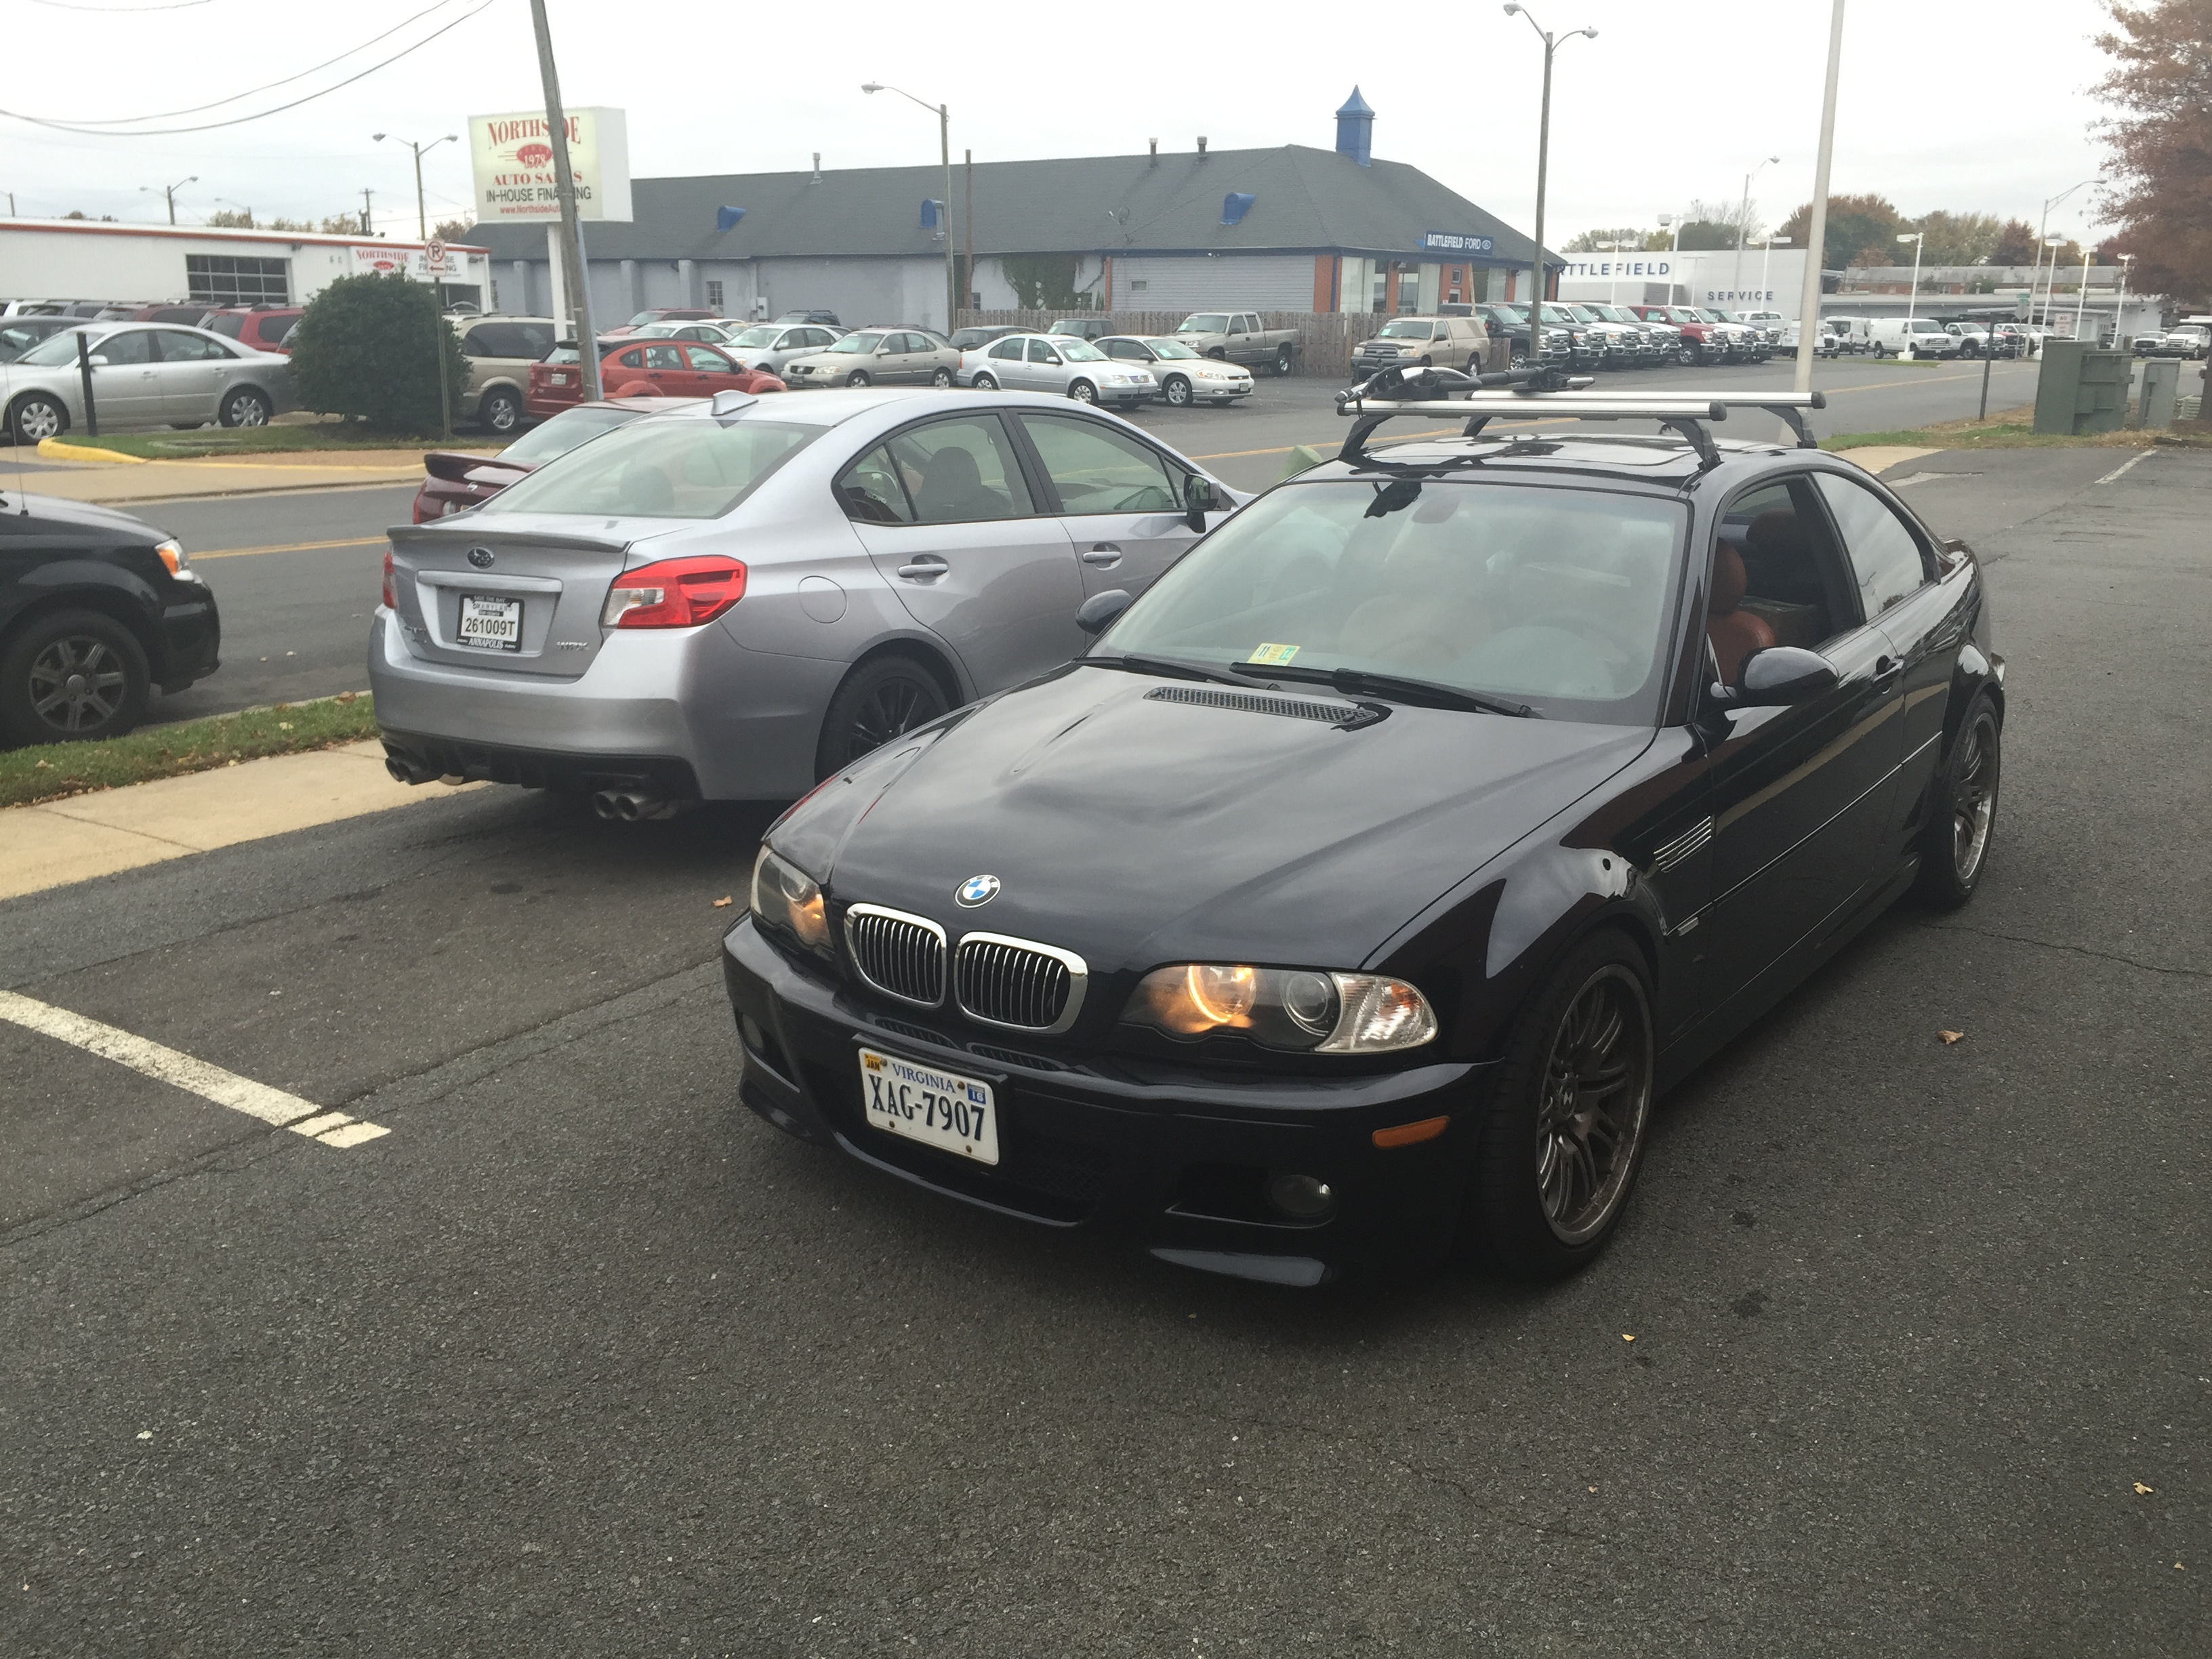 Carbon Black E46 M3 and Ice Silver Subaru WRX